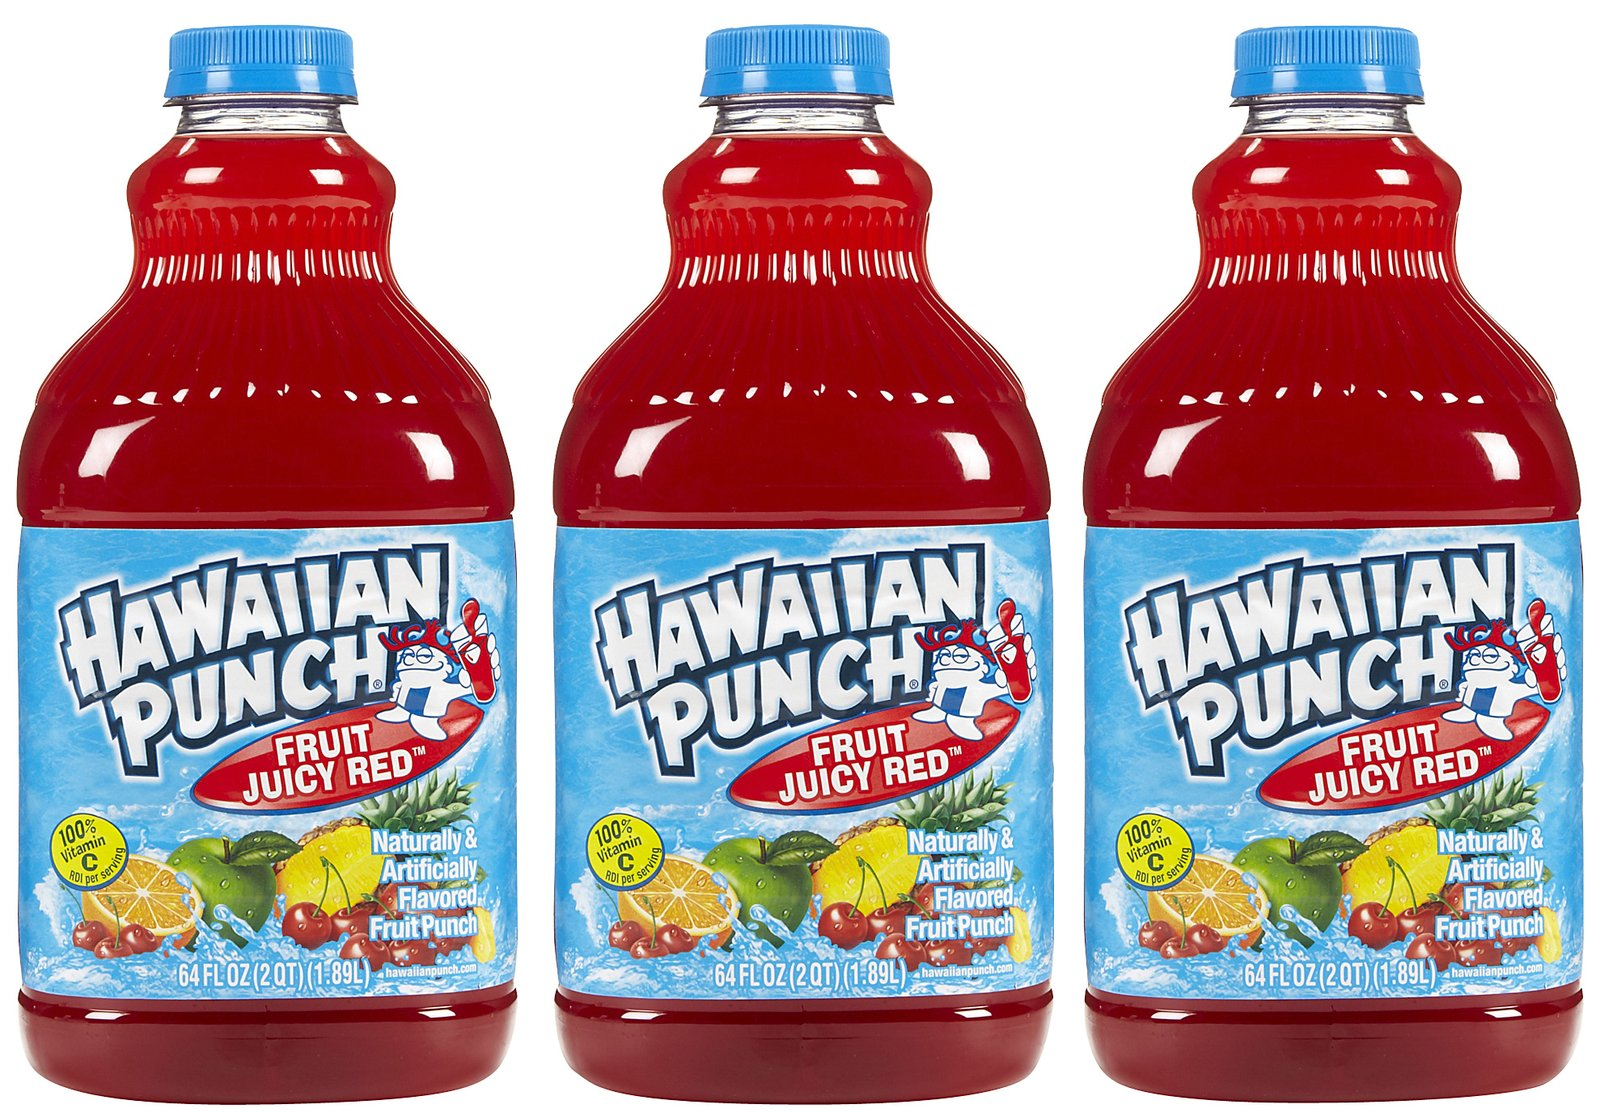 Save $1.00 off when you buy 1 (6-pack) 10 oz Hawaiian Punch